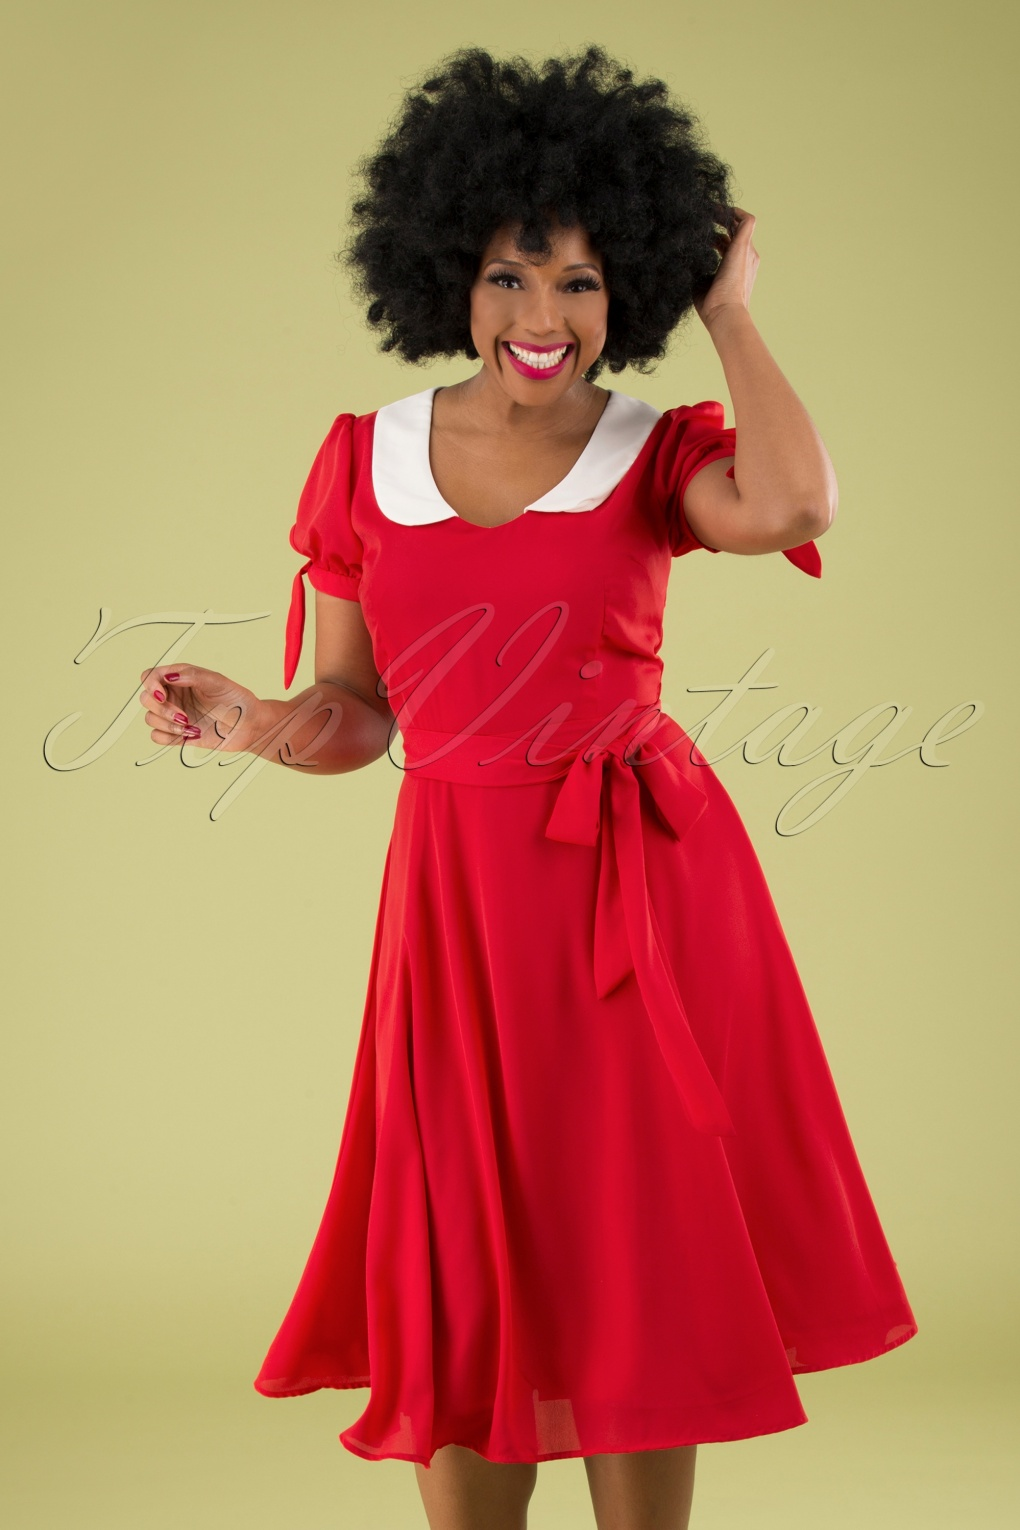 500 Vintage Style Dresses for Sale | Vintage Inspired Dresses 50s Mirella Swing Dress in Red £70.15 AT vintagedancer.com